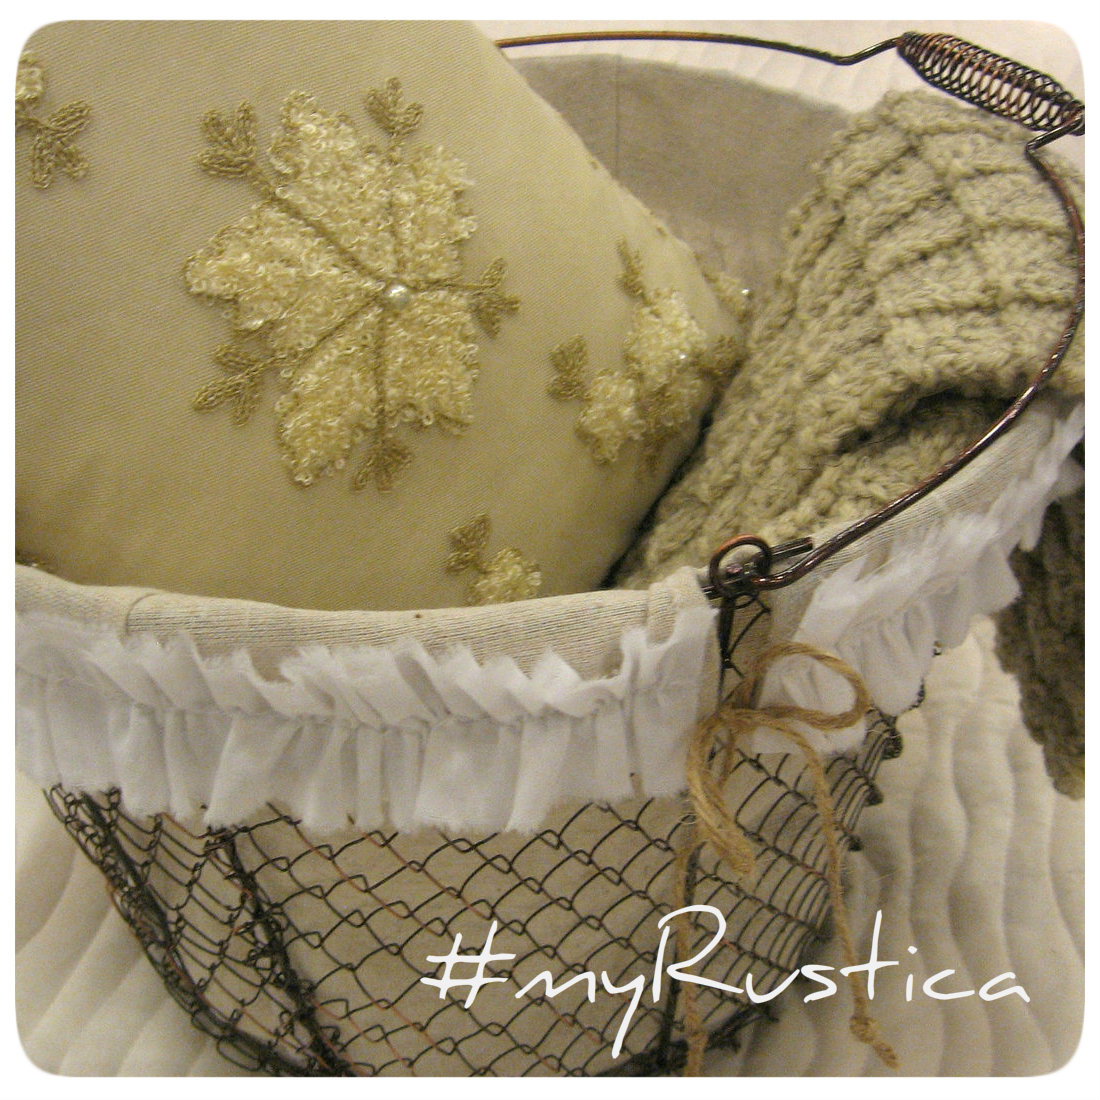 rustic gifts handmade in Mexico